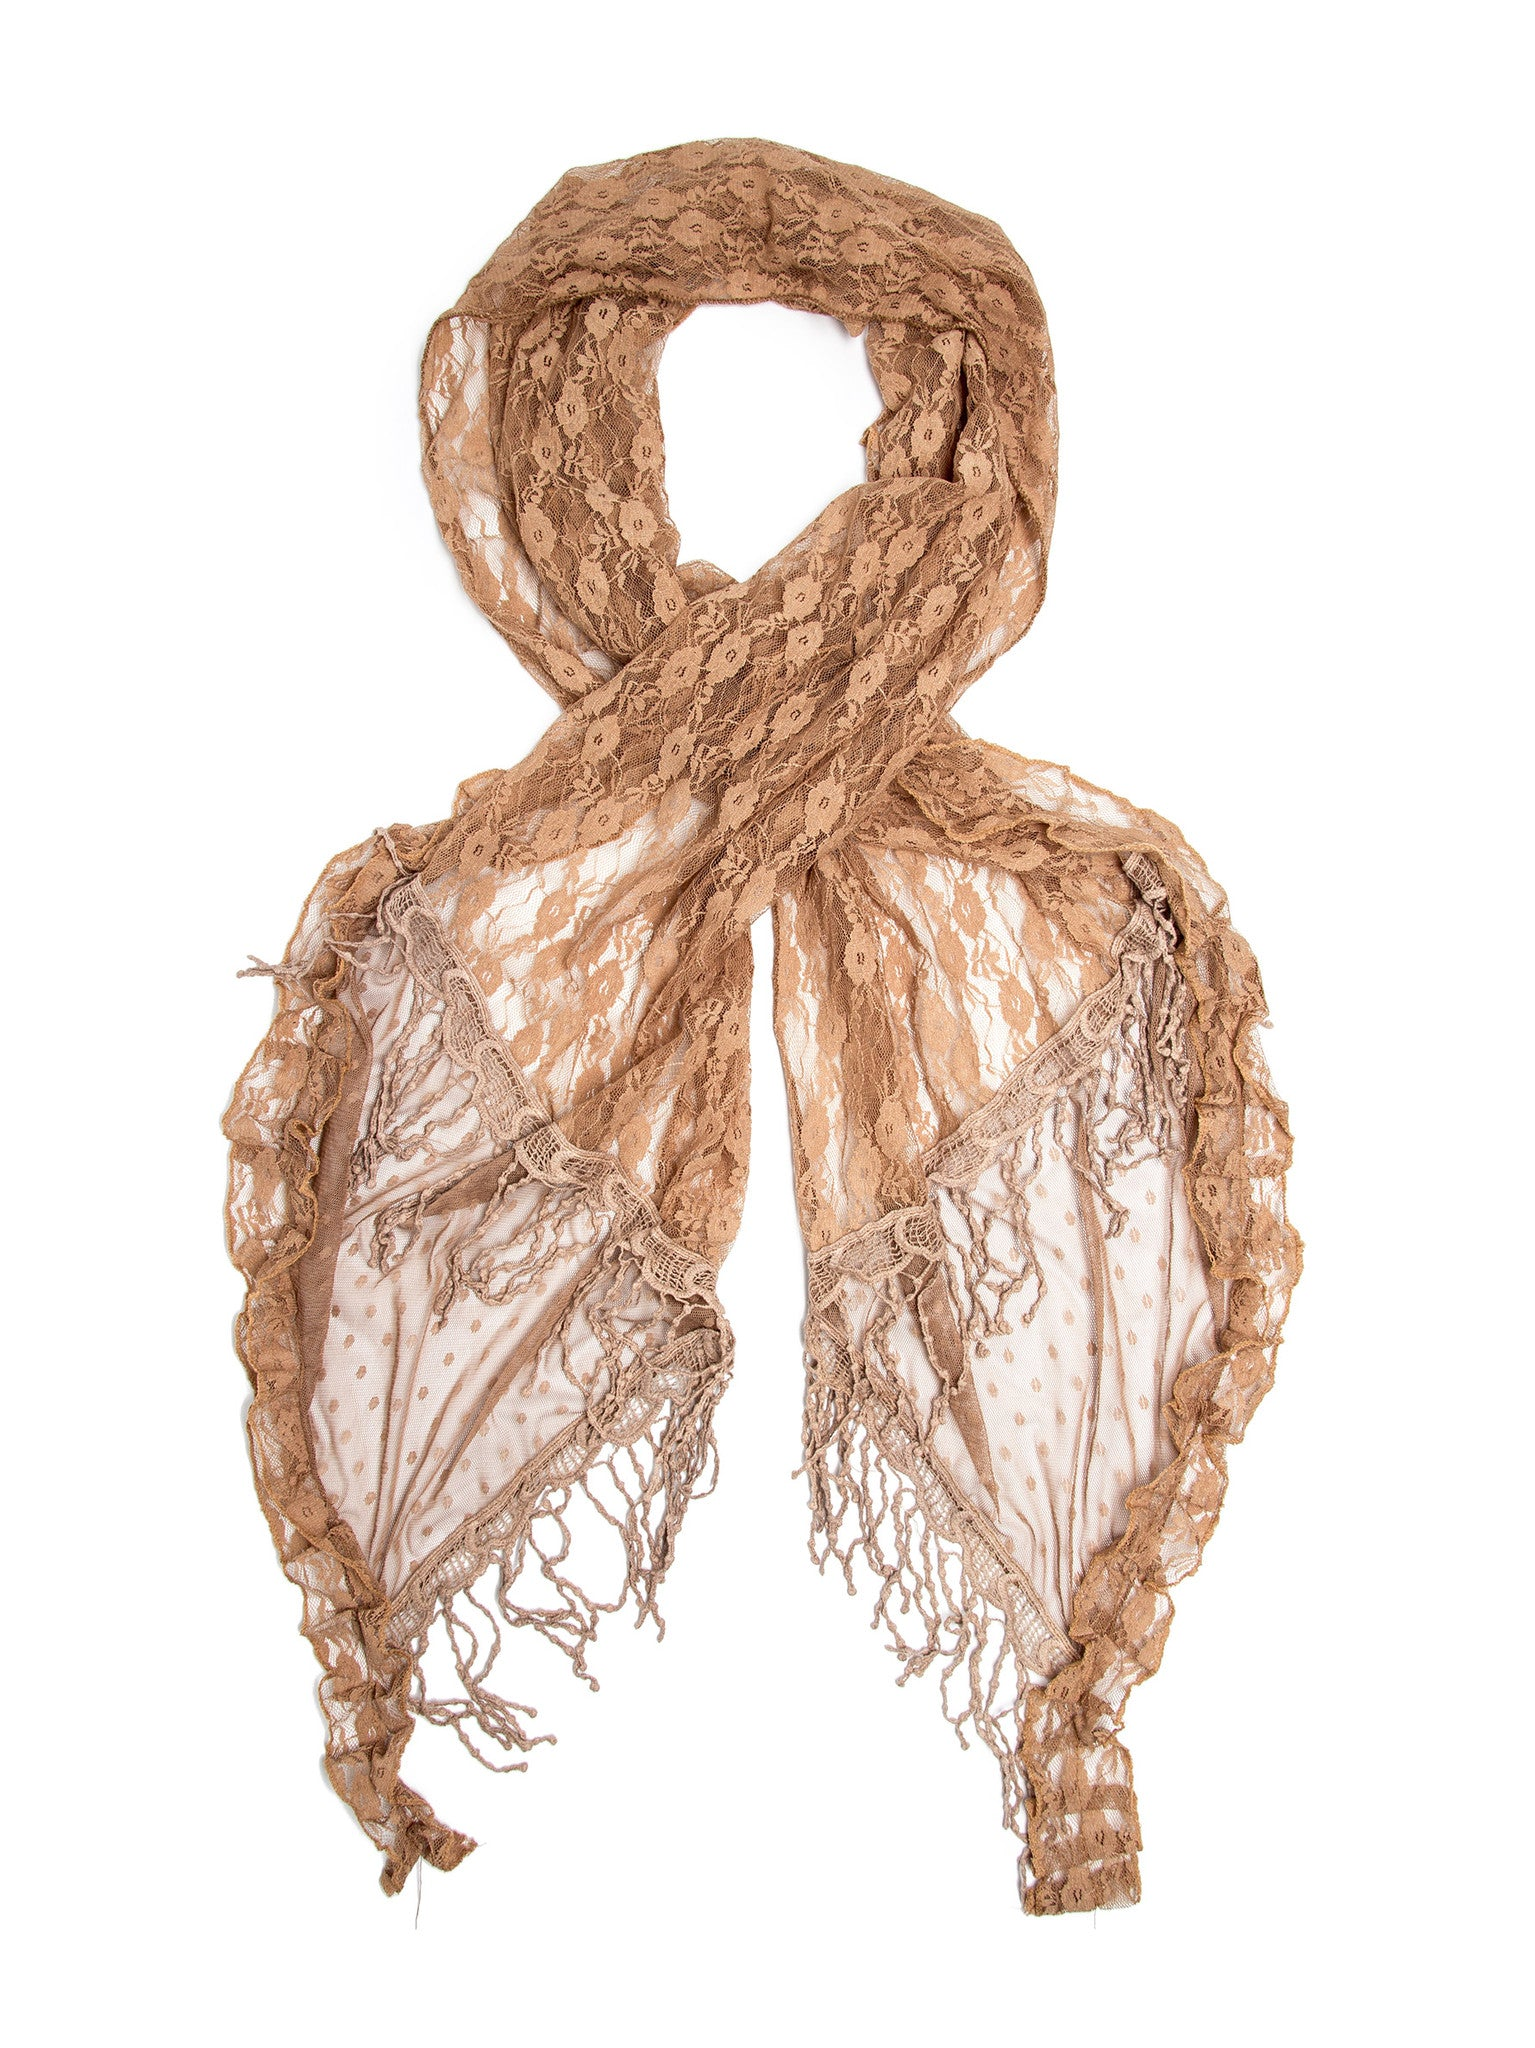 Scarves - Elise Scarf, Vintage Inspired Lace Scarf, Long Crochet Trim -(Warm Beige / One Size) Bohomonde  - 4